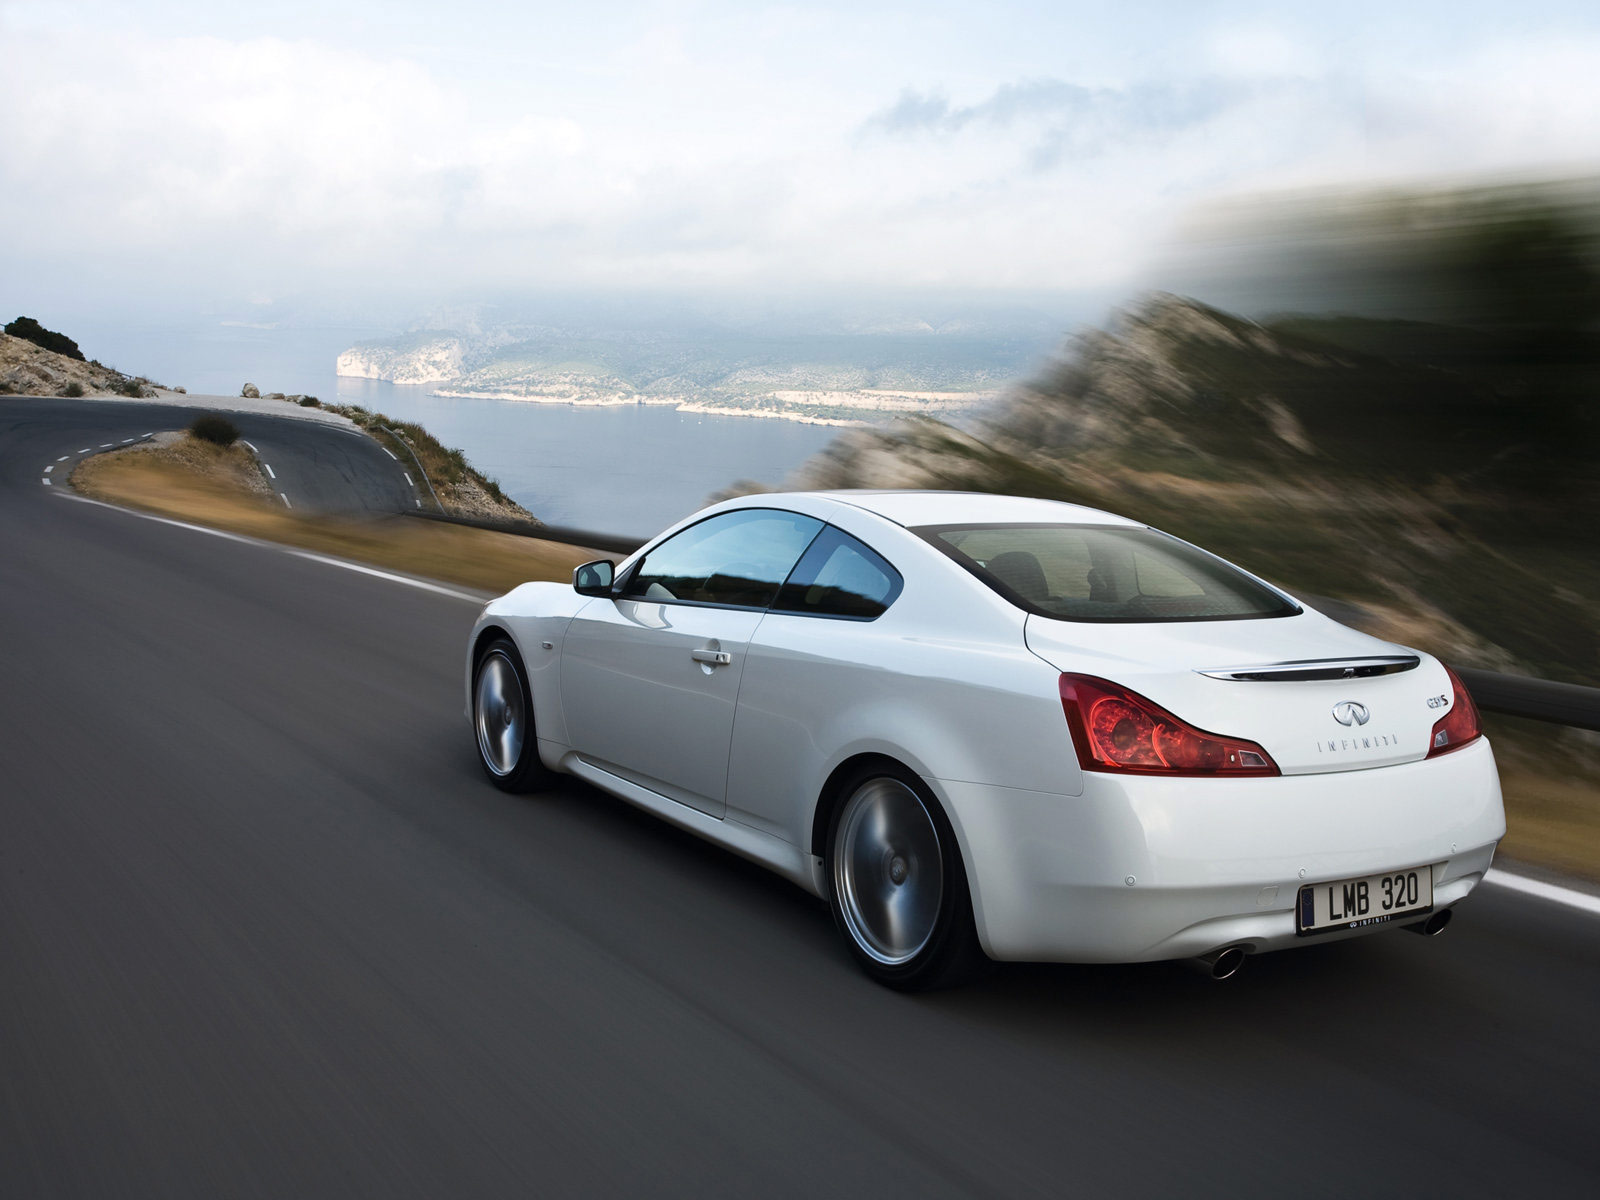 2009 infiniti g37 coupe car accident lawyers info wallpapers. Black Bedroom Furniture Sets. Home Design Ideas